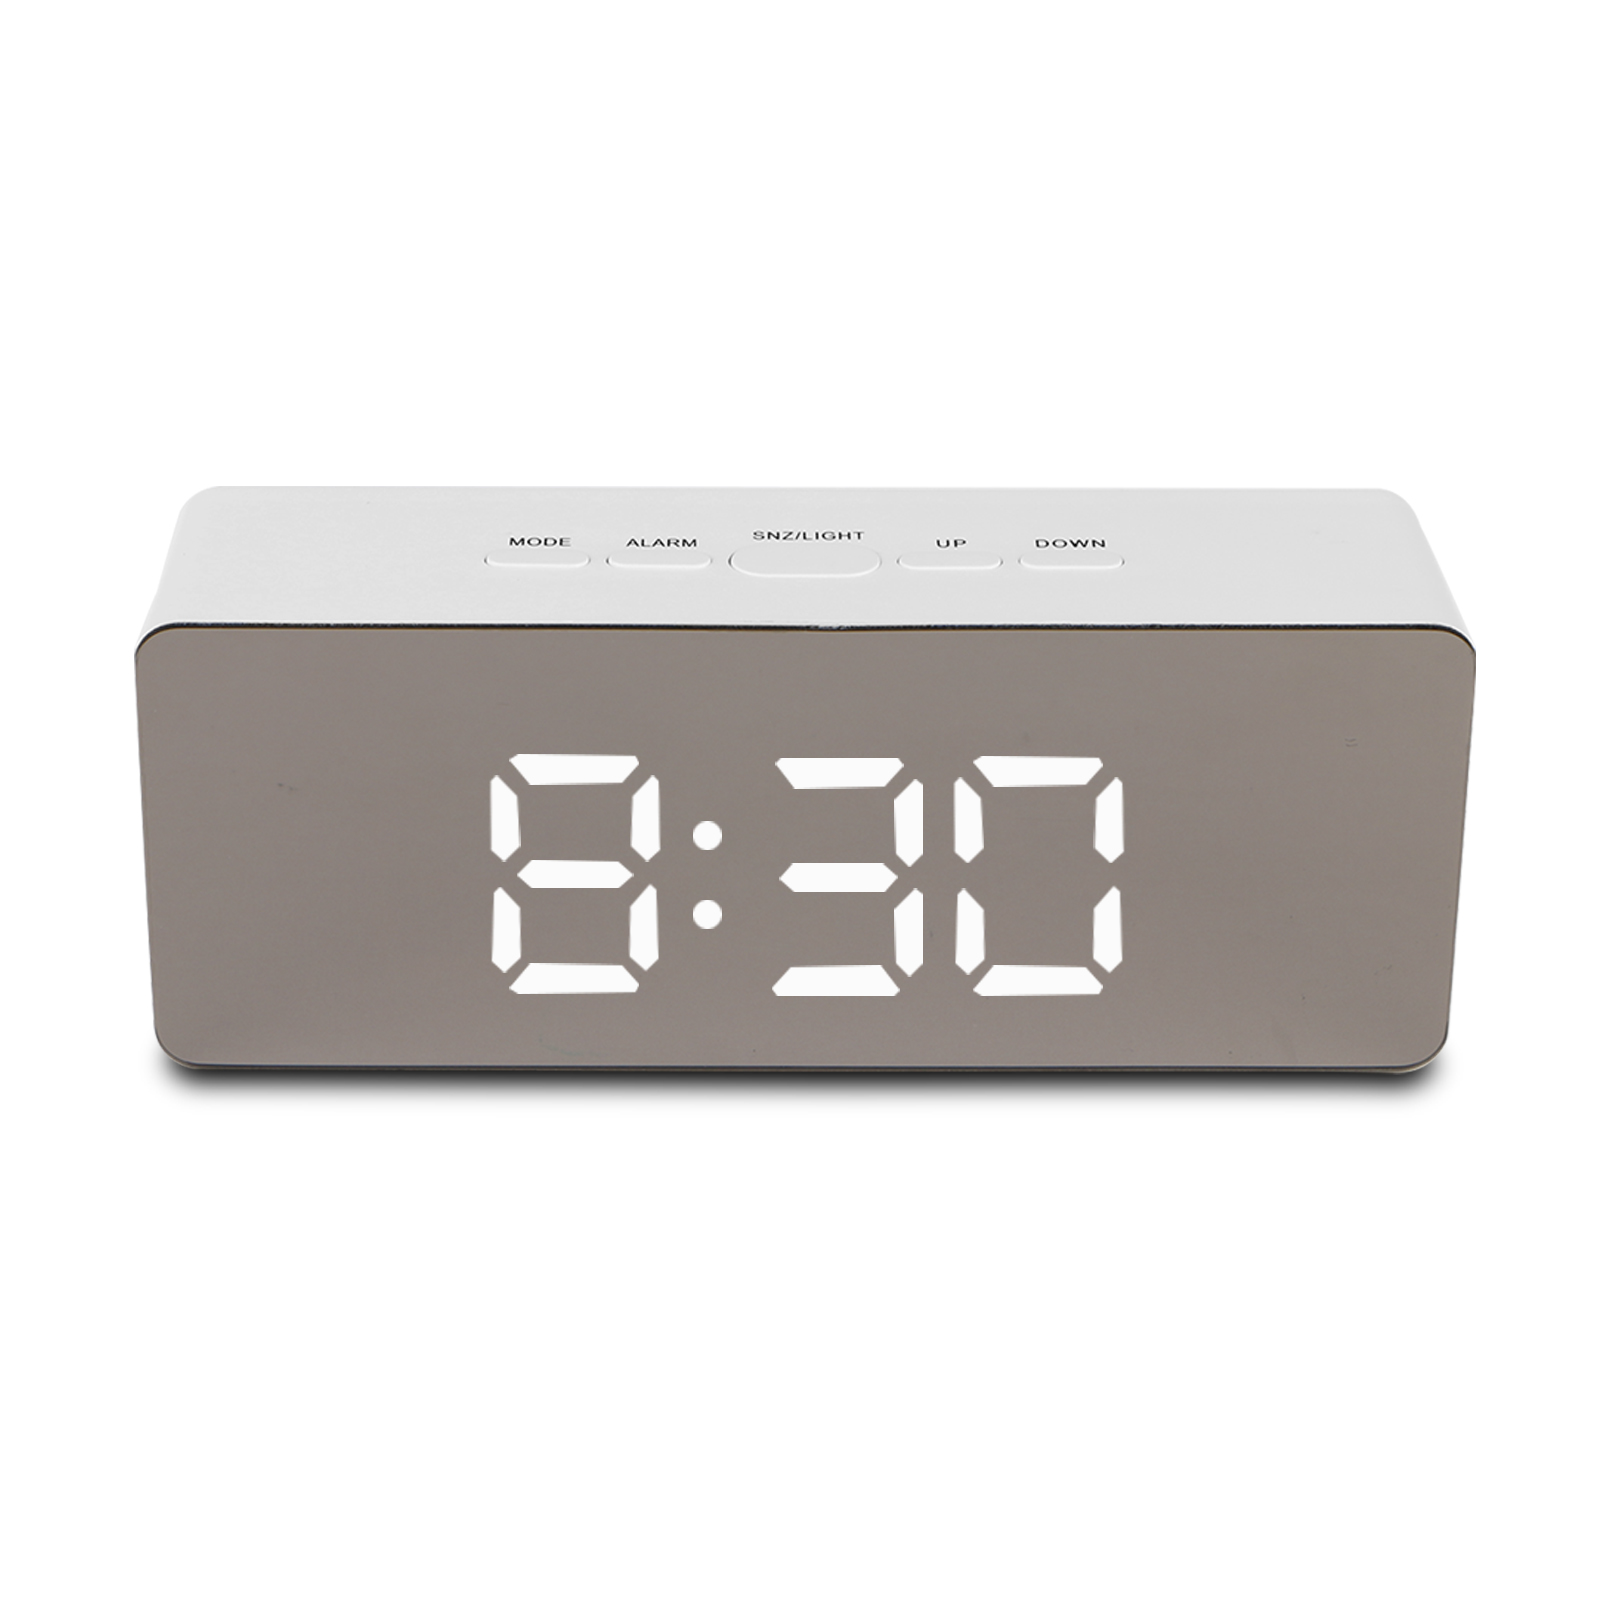 TSV Alarm Clock Large Digital LED Display Portable Modern Battery Operated  Mirror Clock USB Powered Smart Snooze Multi-function Time Temperature White